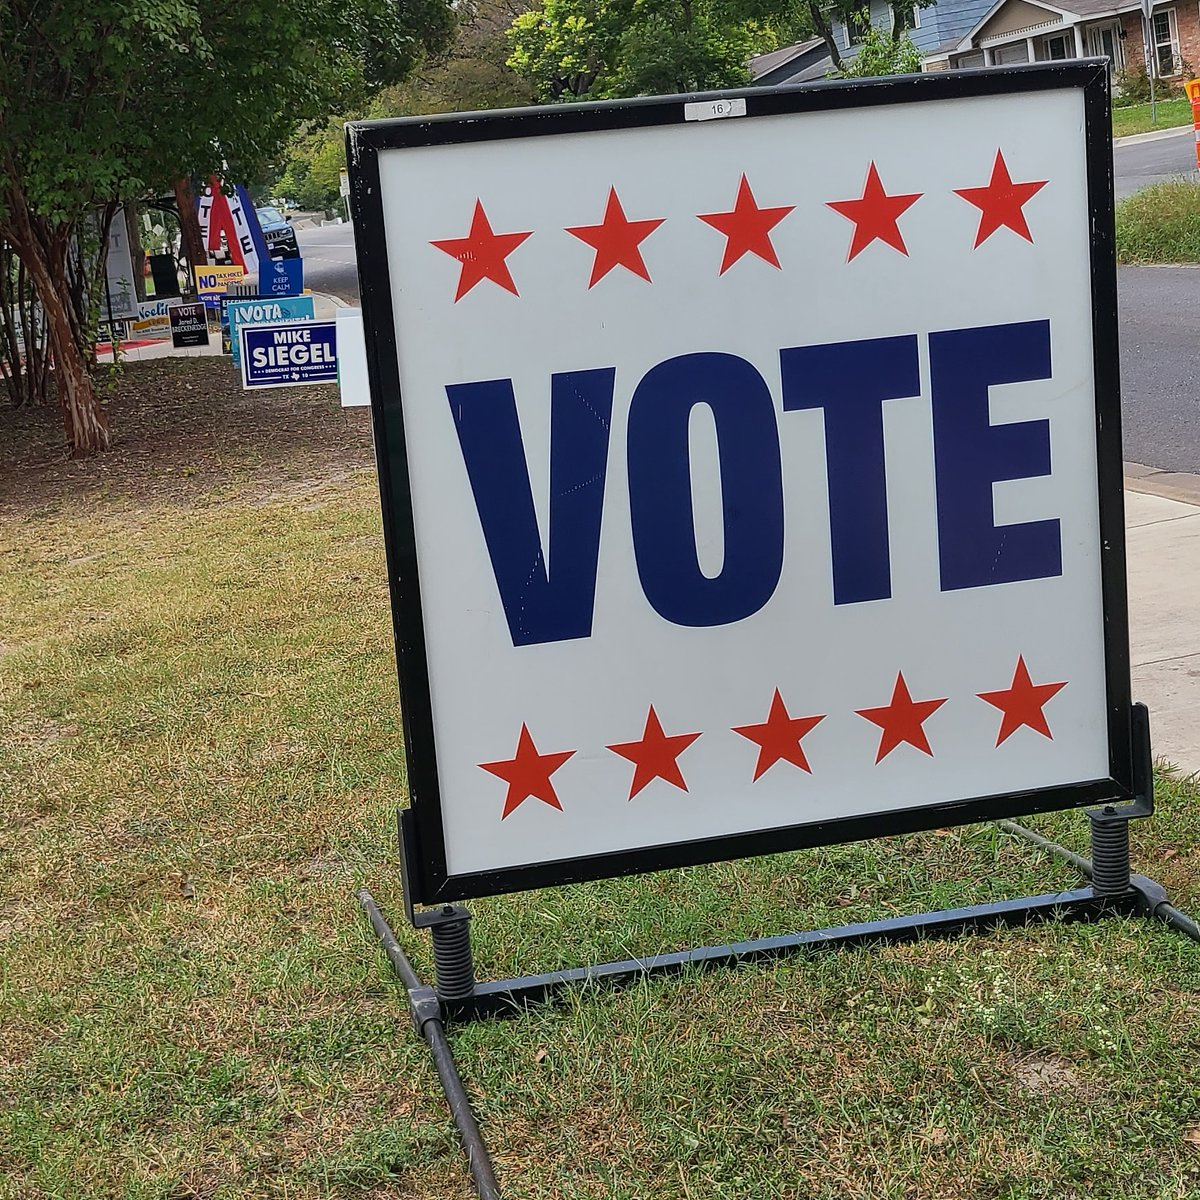 Psssttt... It's the last day of Early Voting in my home state, probably yours too. If you haven't already, go vote today, it'll be easier than trying on Tuesday.  If your vote didn't matter, they wouldn't try so hard to prevent it from being counted.  Please vote.